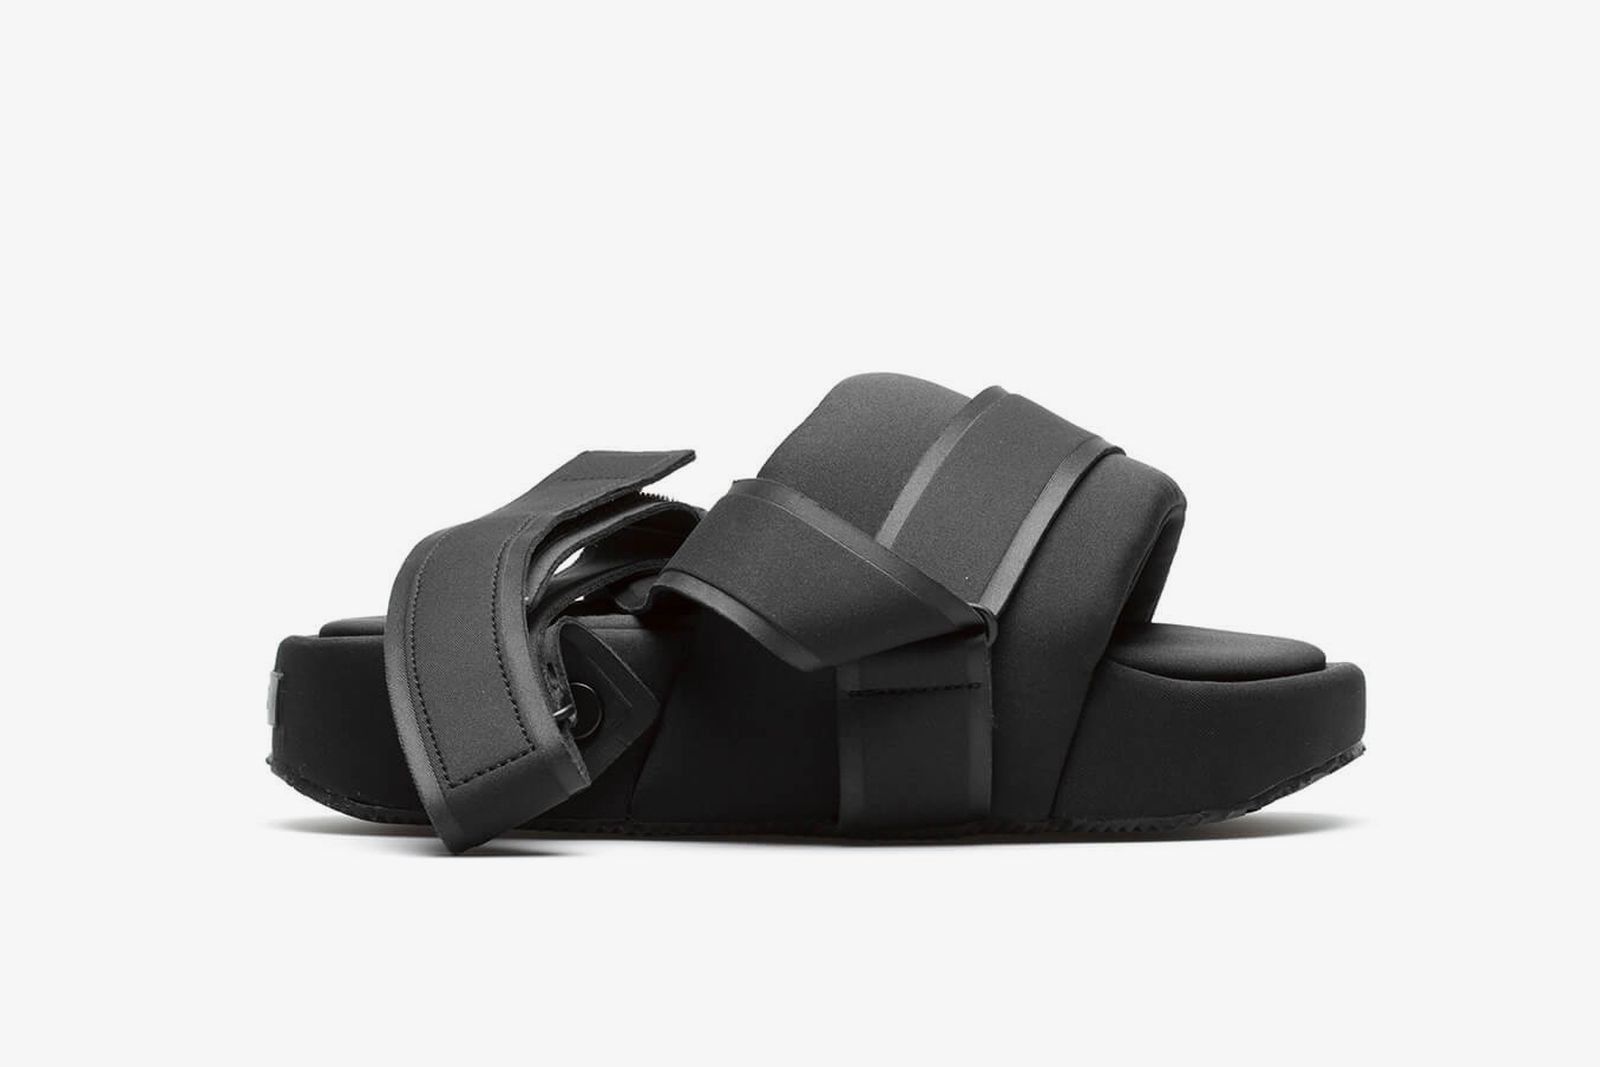 08291_sandals_black_vrients_vrnts_y3_ss_20_shop_online_1_1